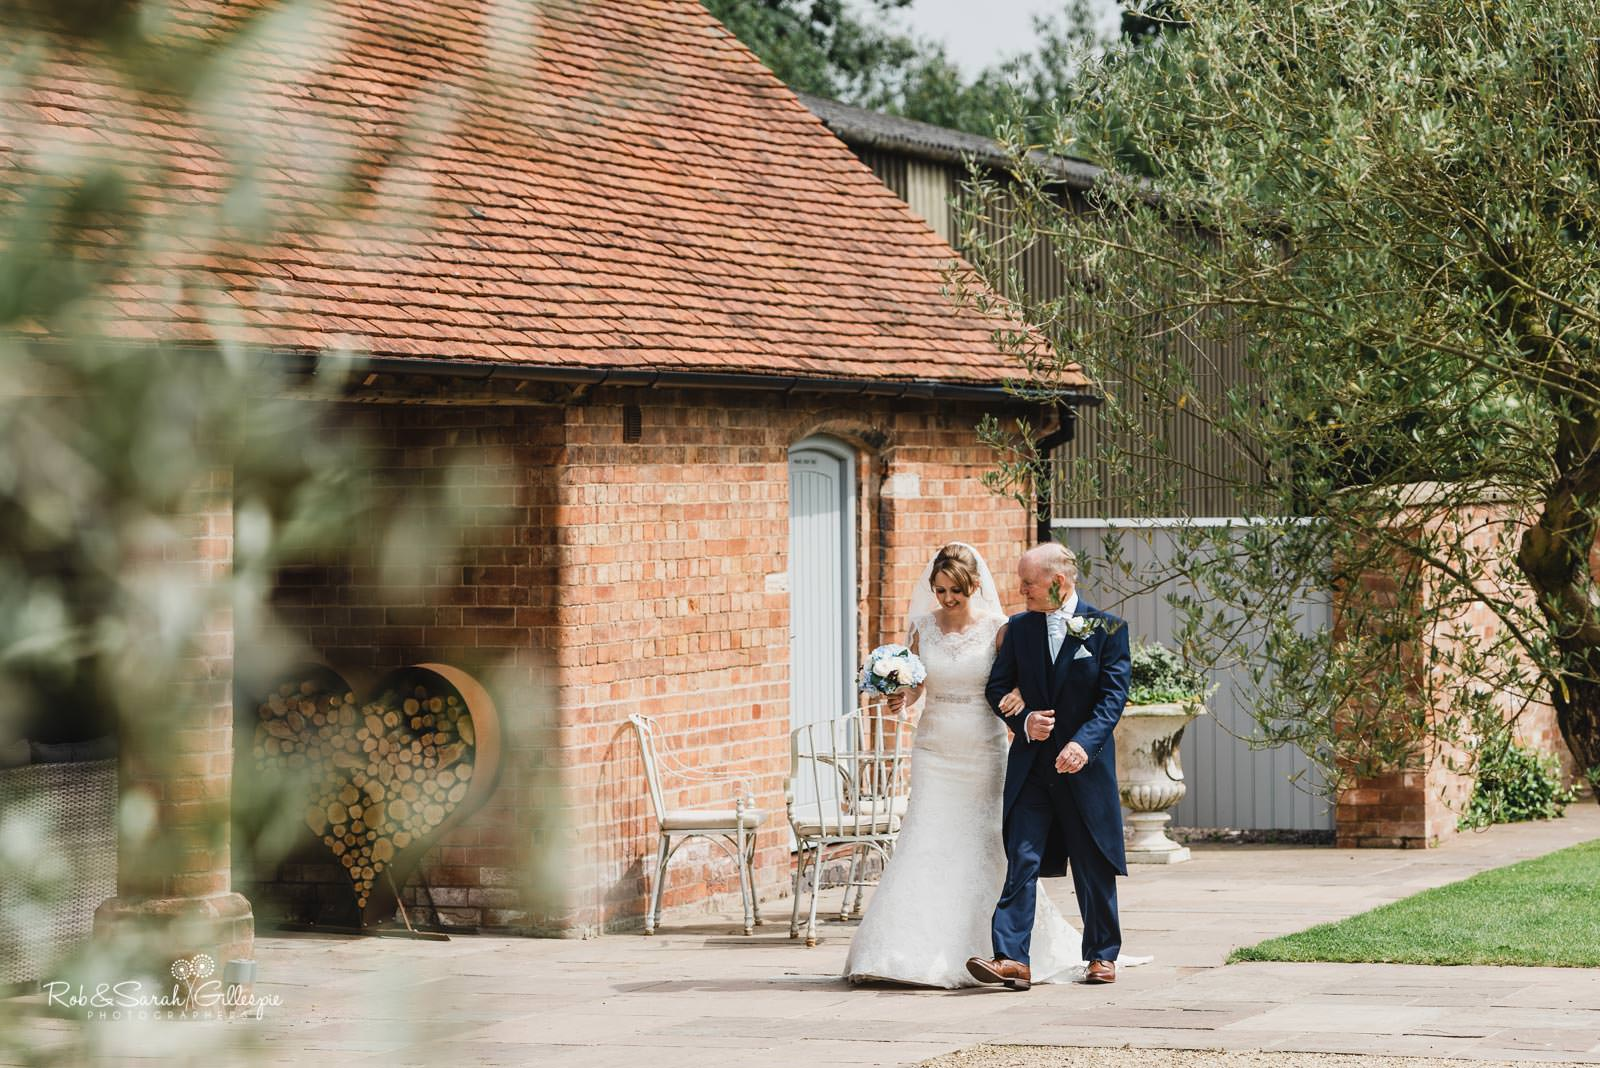 Bride and father walk to ceremony at Wedding ceremony at Swallows Nest Barn wedding